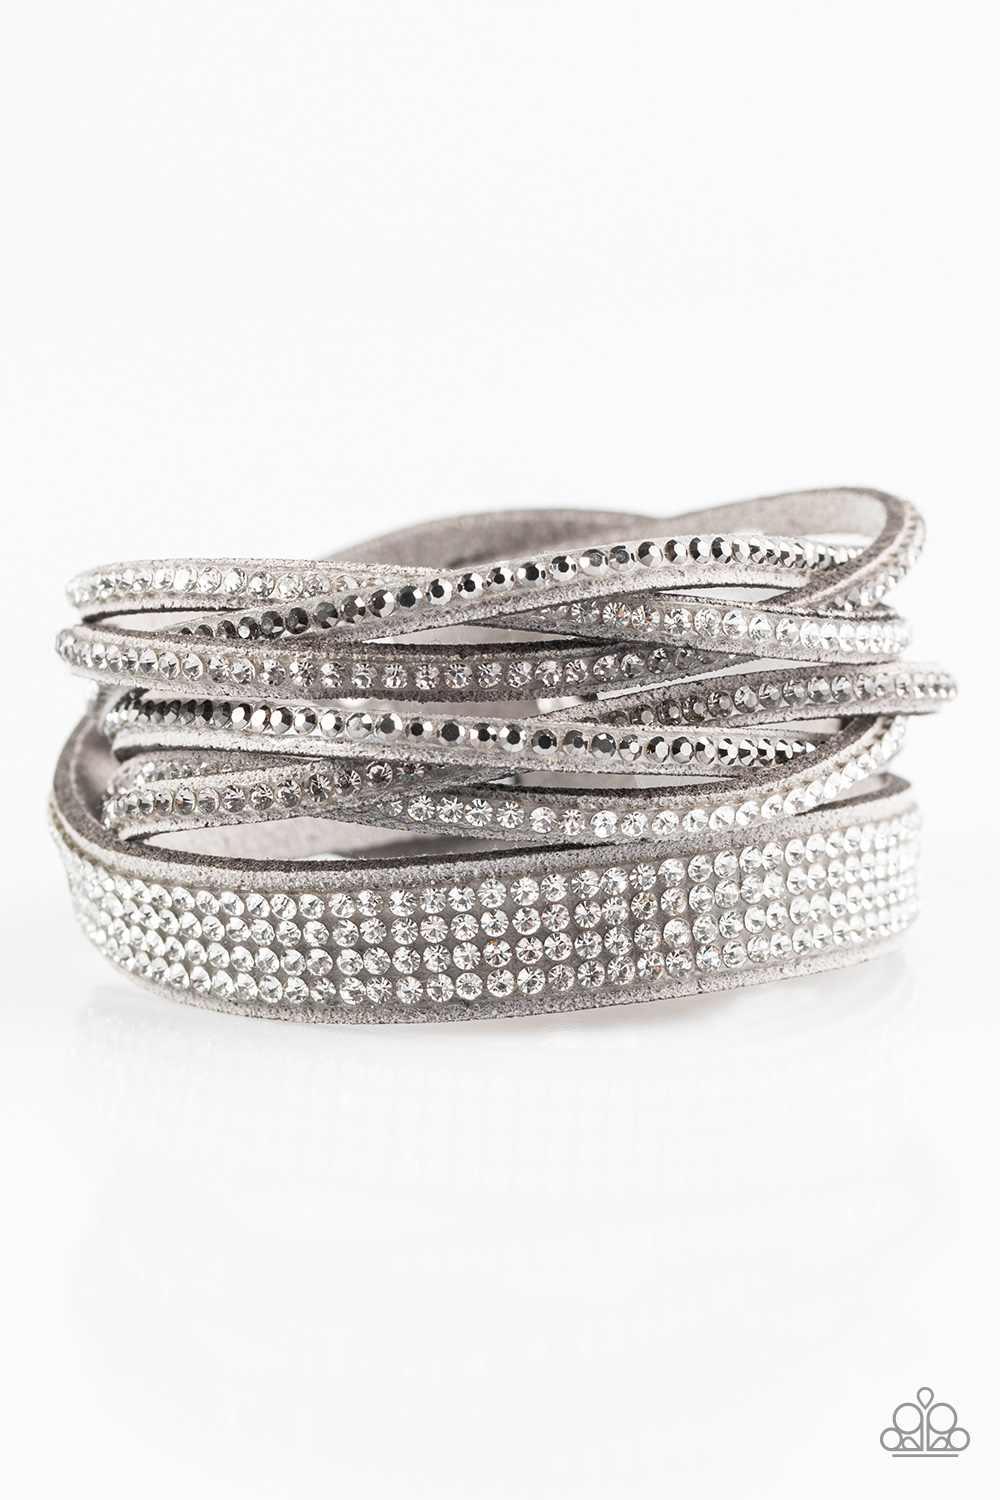 Paparazzi Accessories:  Taking Care Of Business - Silver (2112)